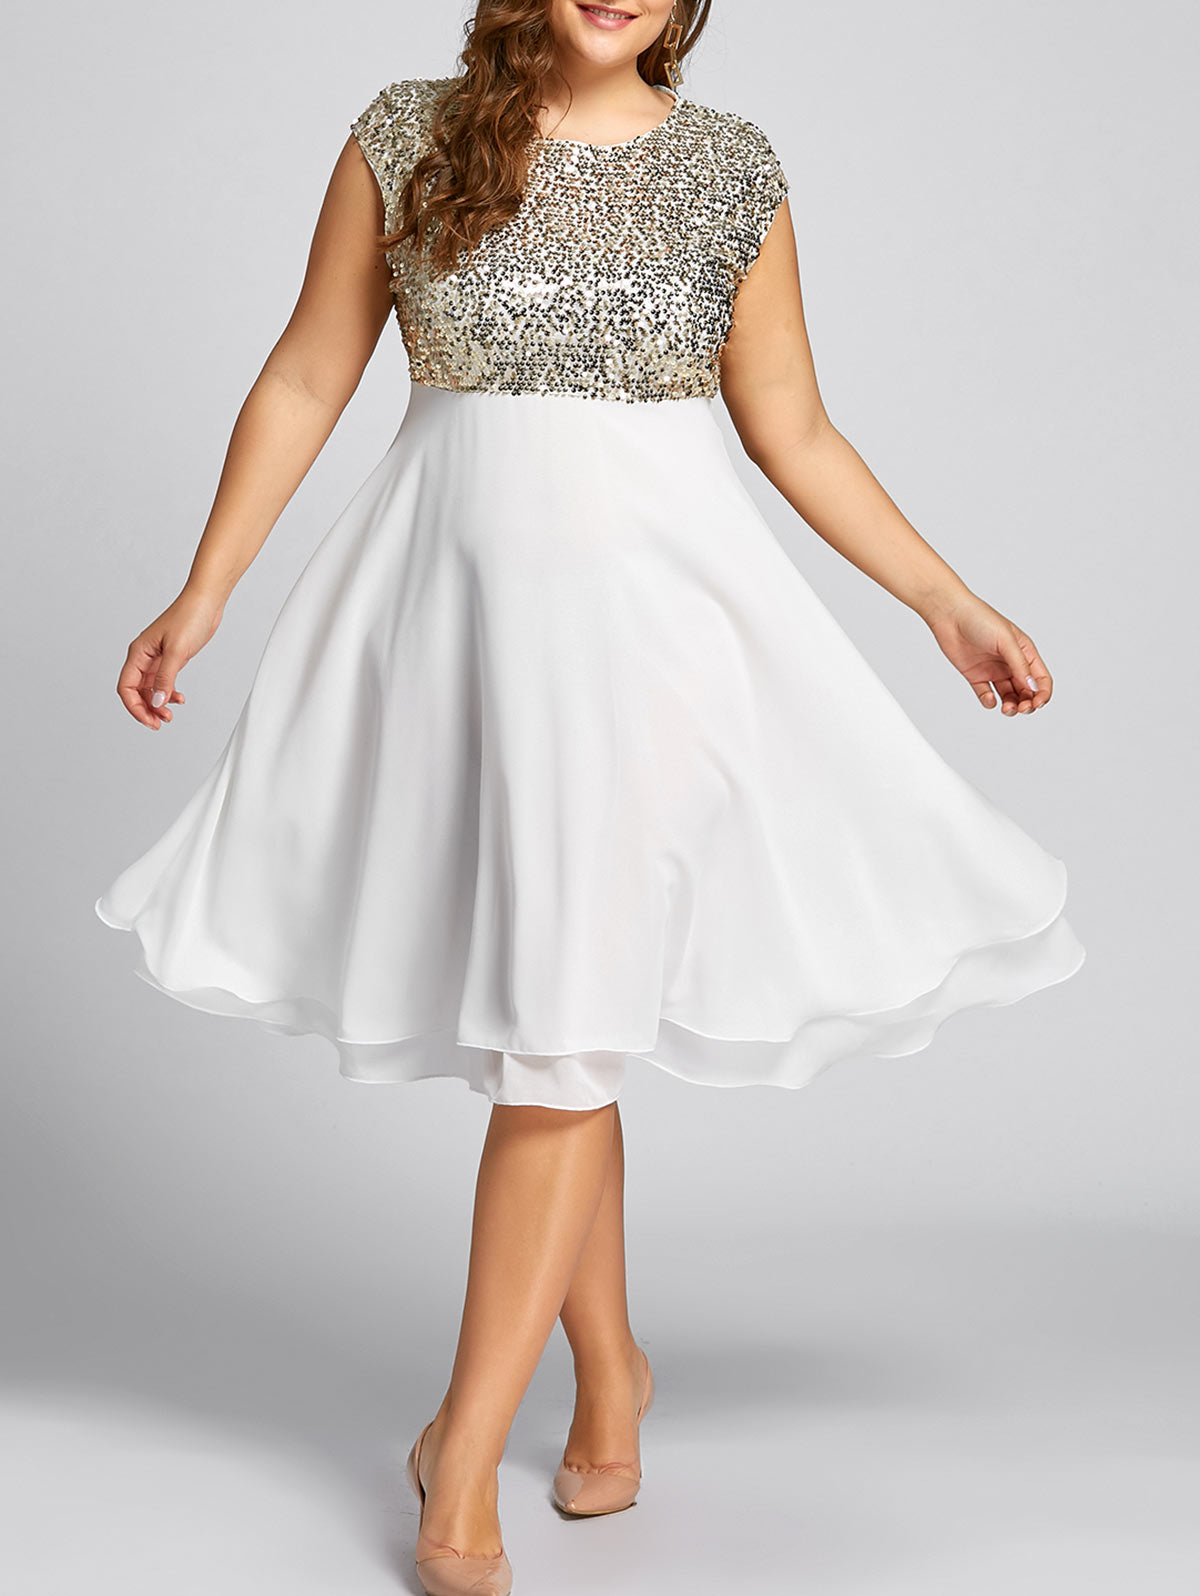 dc06e2f99f9c2 Gamiss Women Flounce Plus Size Dress Sequin Sparkly Dresses Cocktail Short  Sleeves Party Ball Gown Knee-Length Female Vestidos